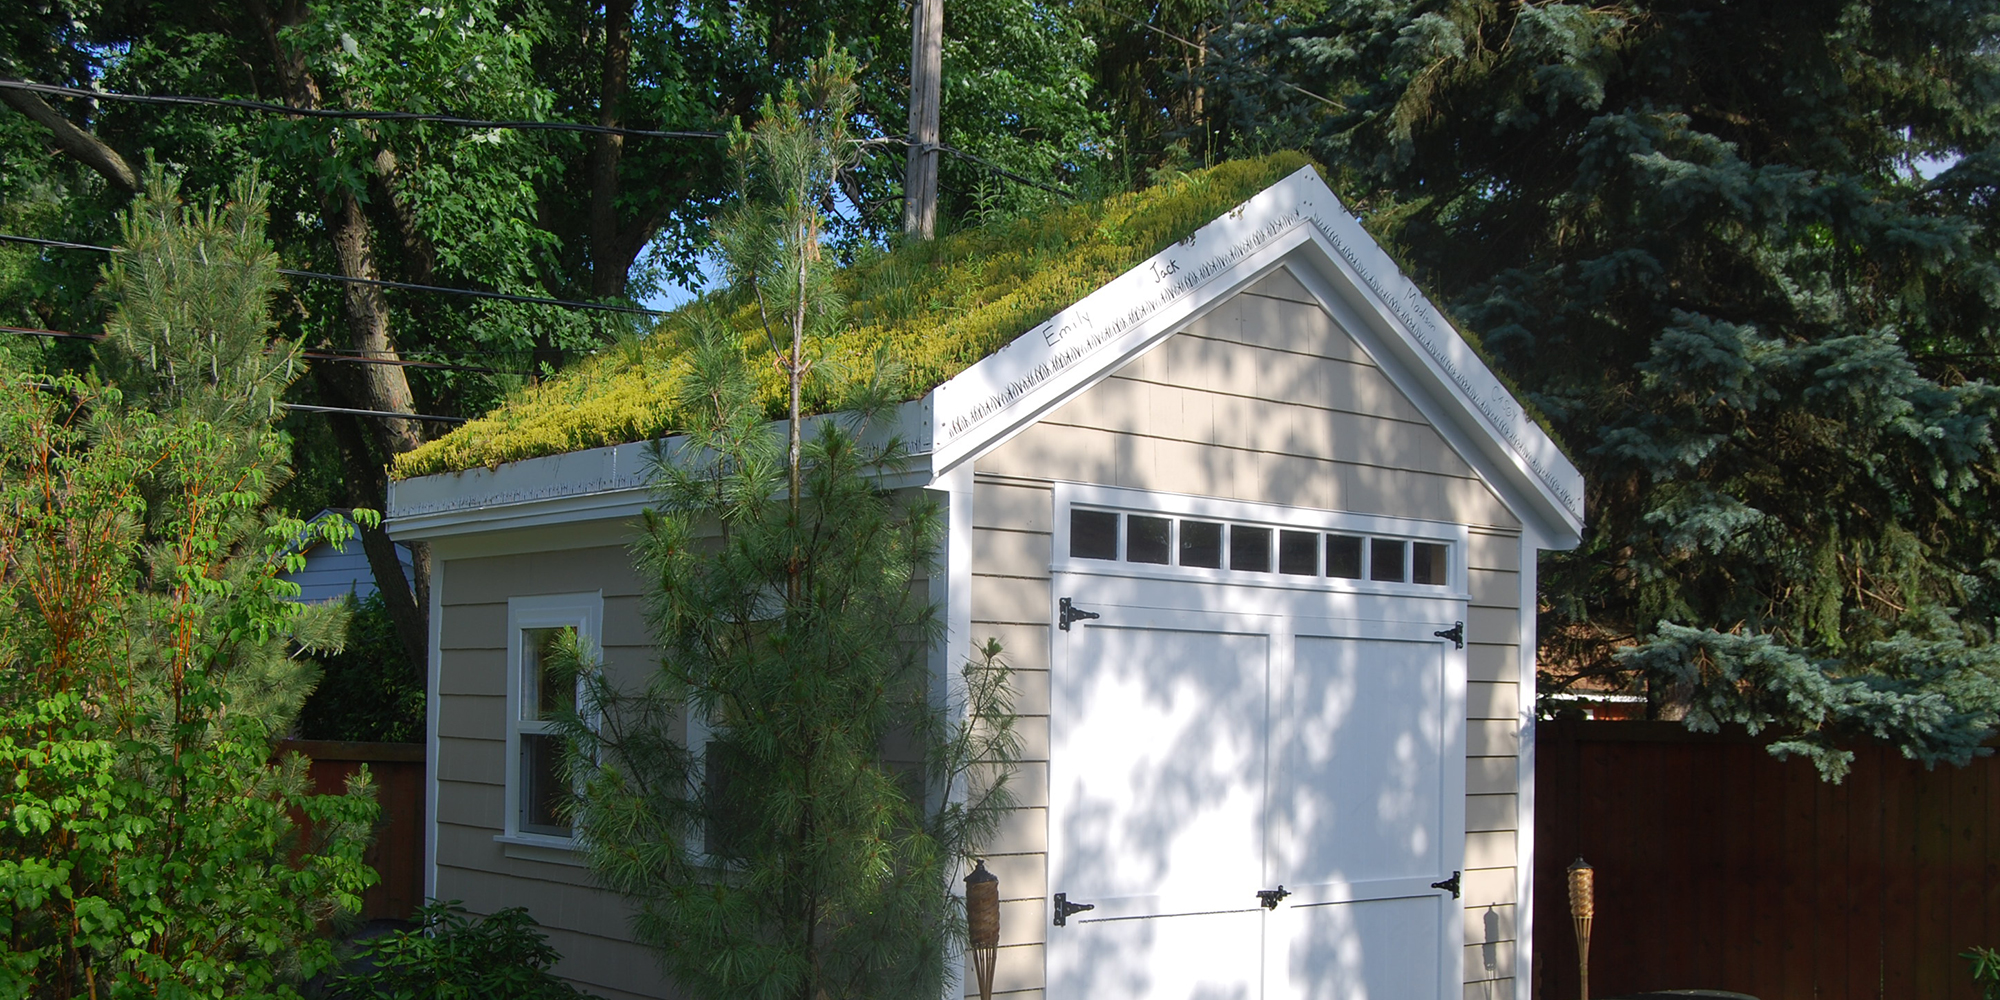 Great This Custom Green Roof Is A Perfect Example Of Green Roof Solutionsu0027  Capabilities. We Created Custom Edging, Including Our Distinctive Grass  Blade ...